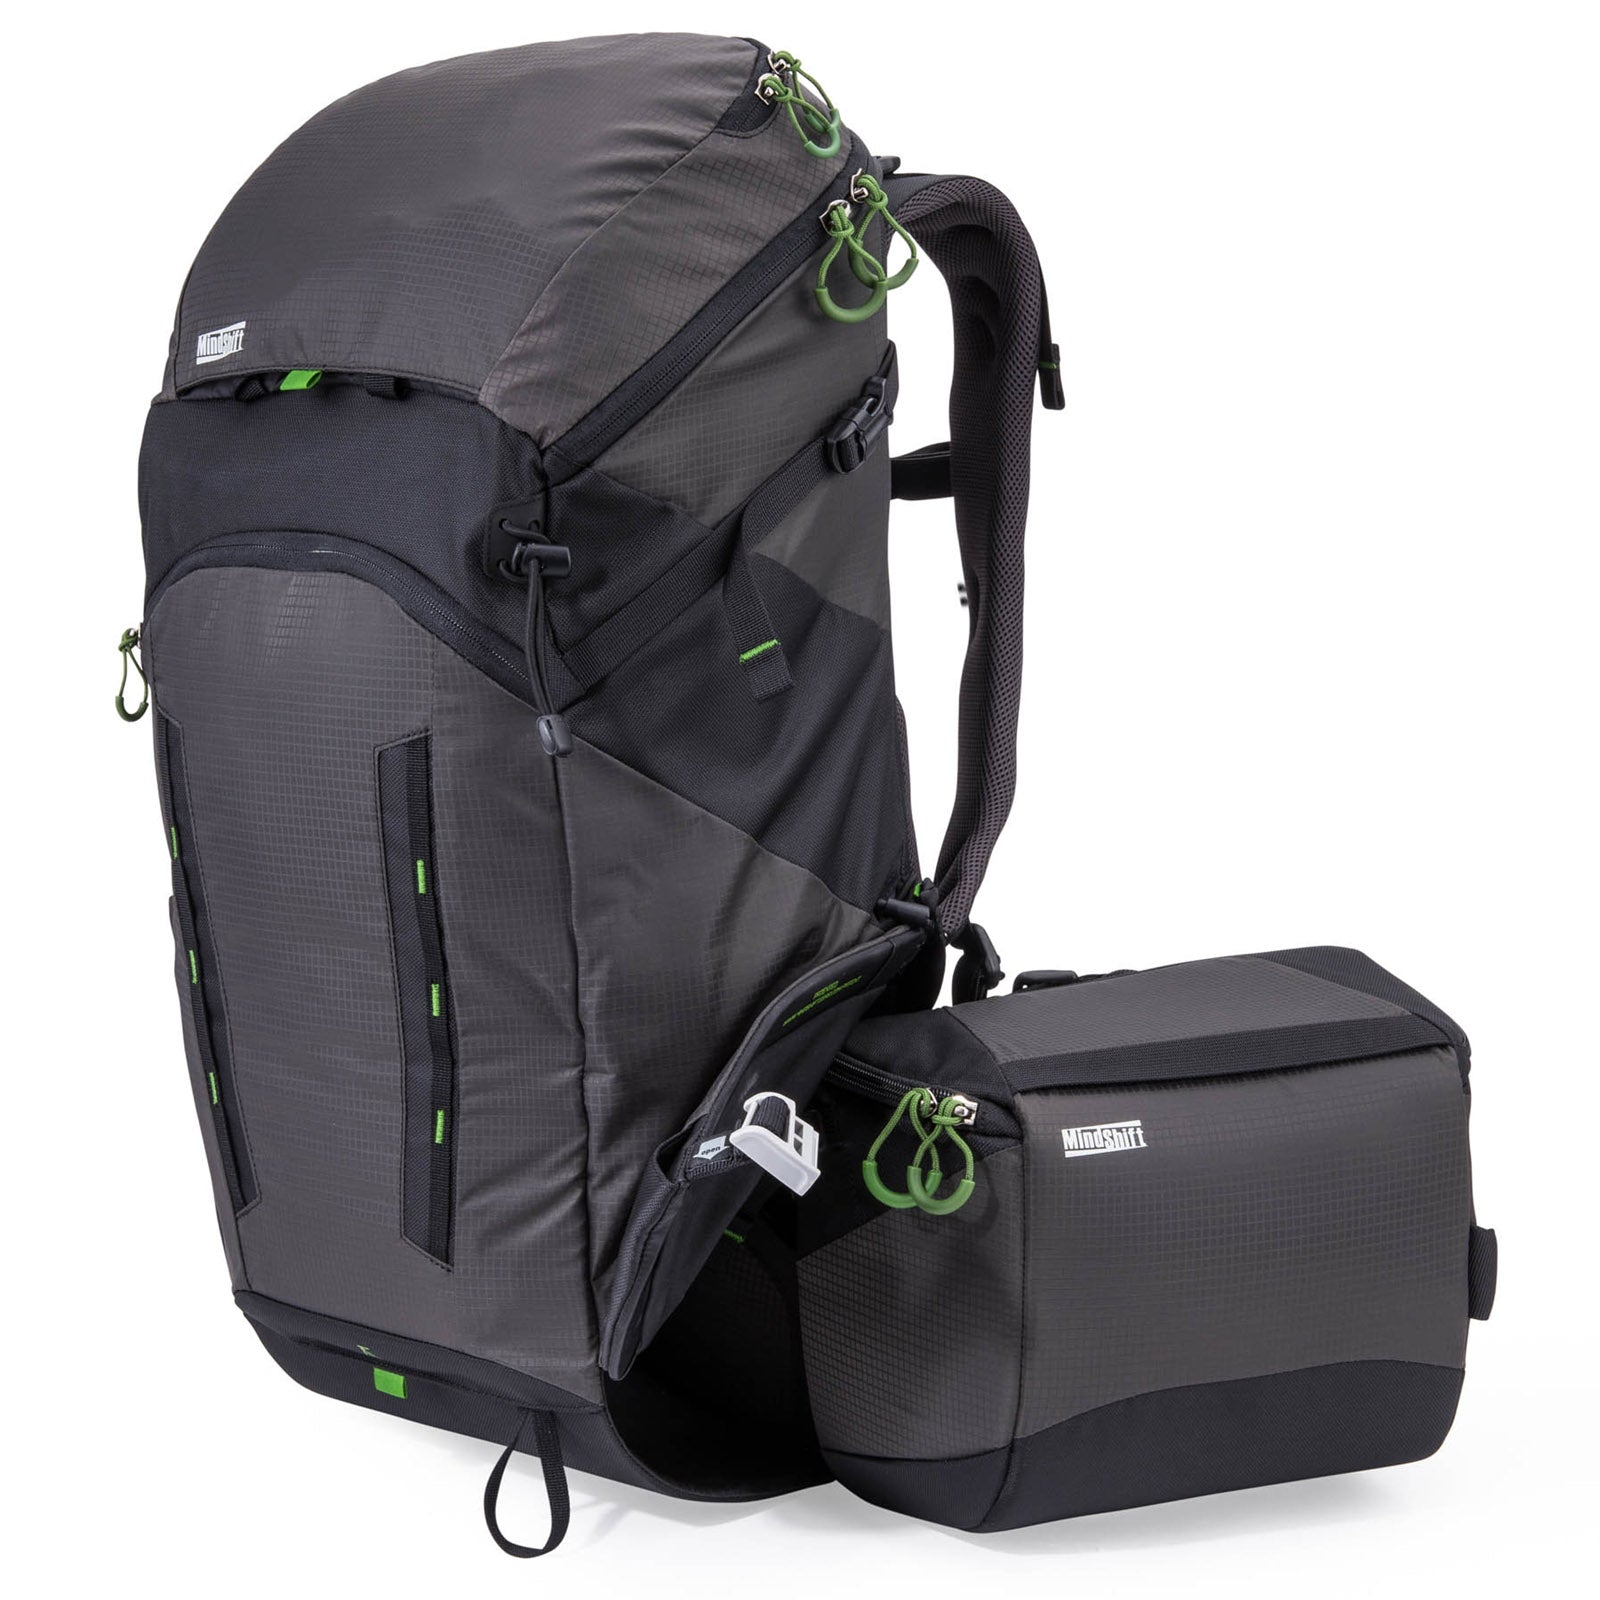 "Rotating beltpack for accessing your trail essentials: Camera, 10"" tablet, binoculars, maps, guidebook, and snacks"